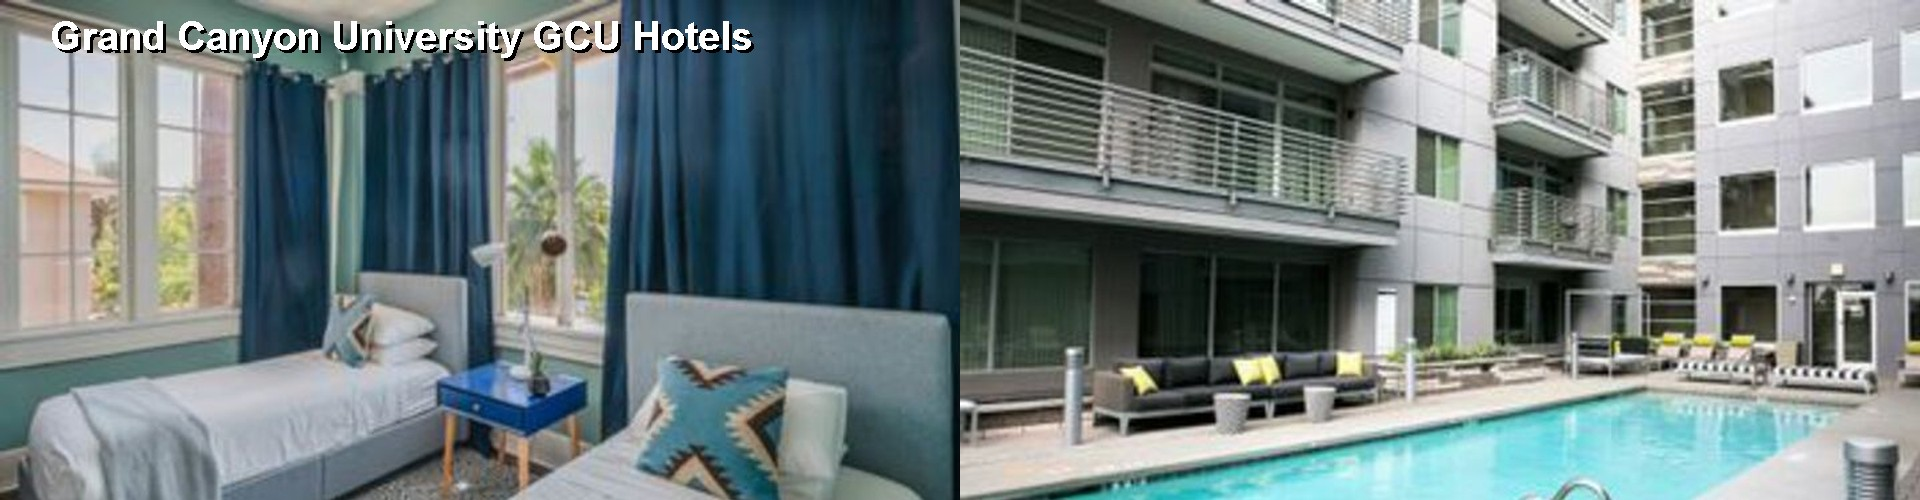 5 Best Hotels near Grand Canyon University GCU